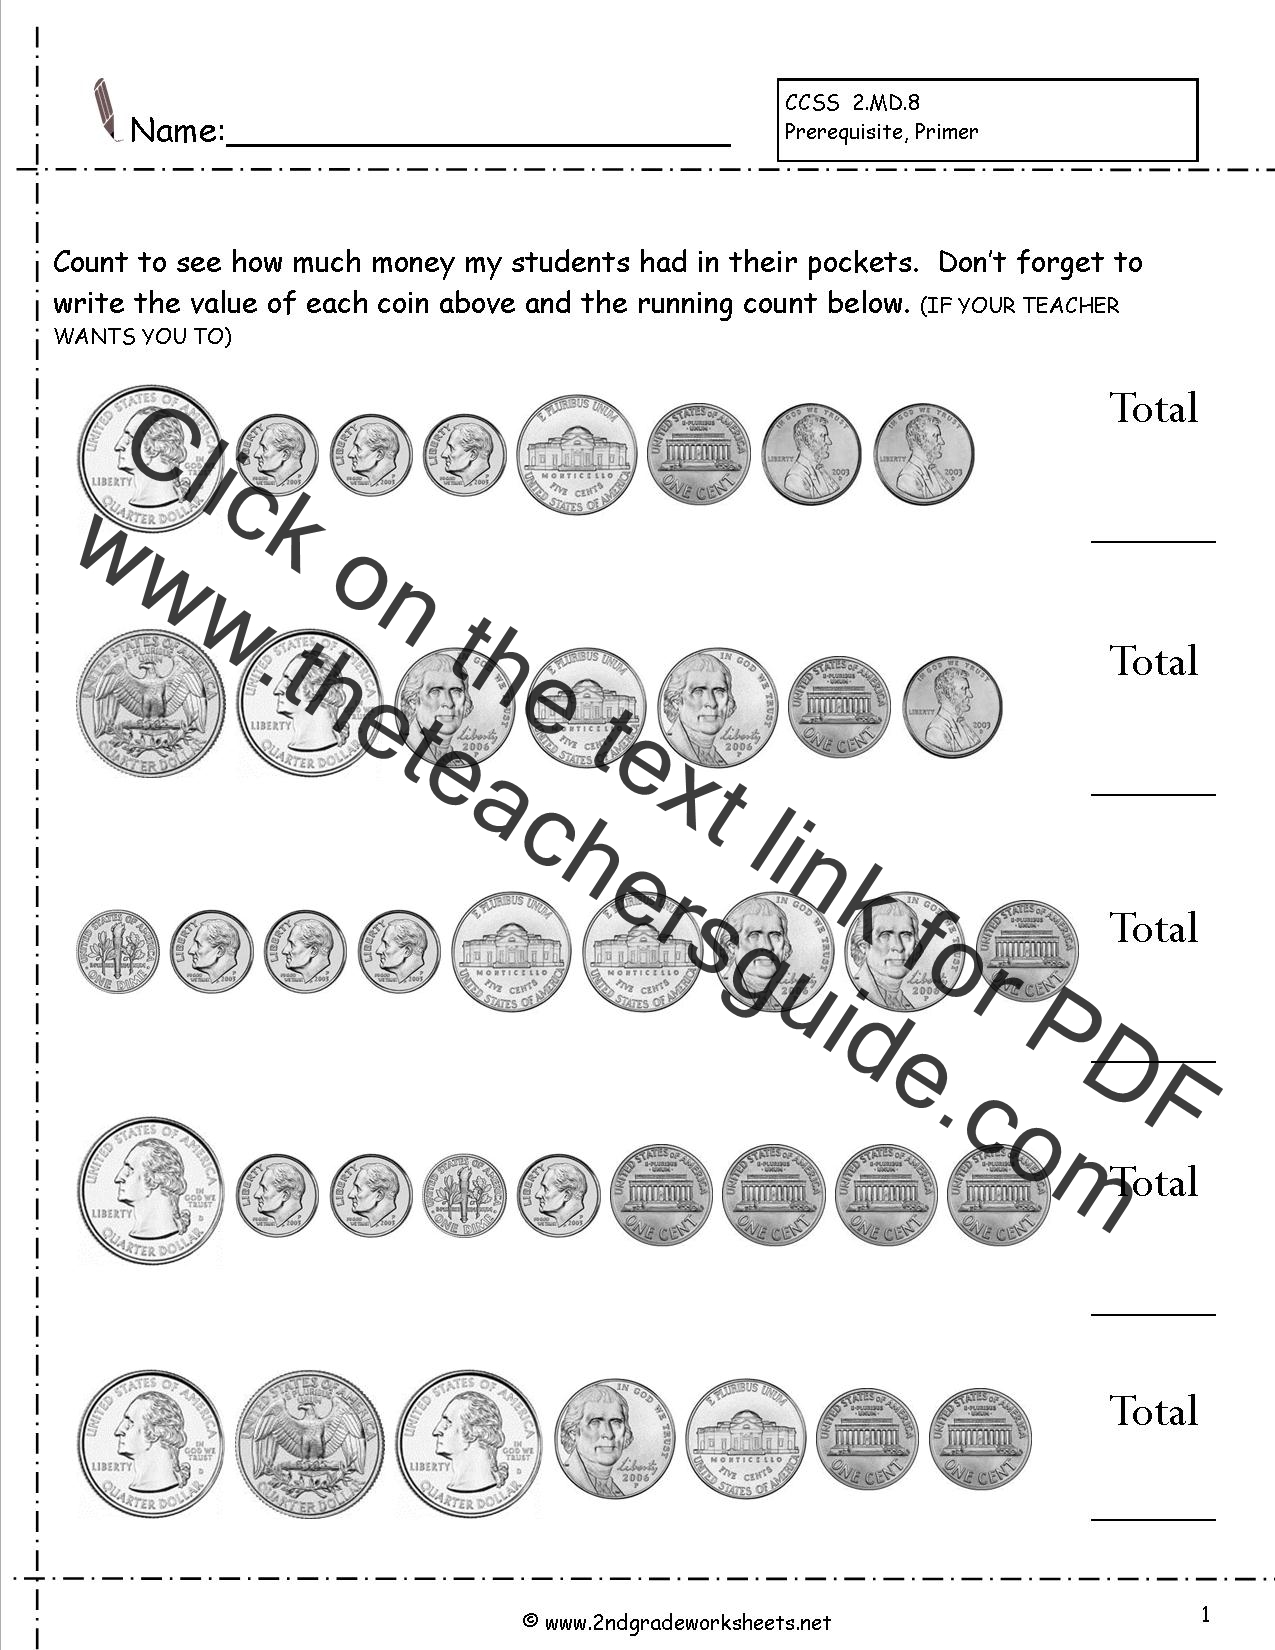 Worksheet 2nd Grade Counting Money counting coins and money worksheets printouts worksheets